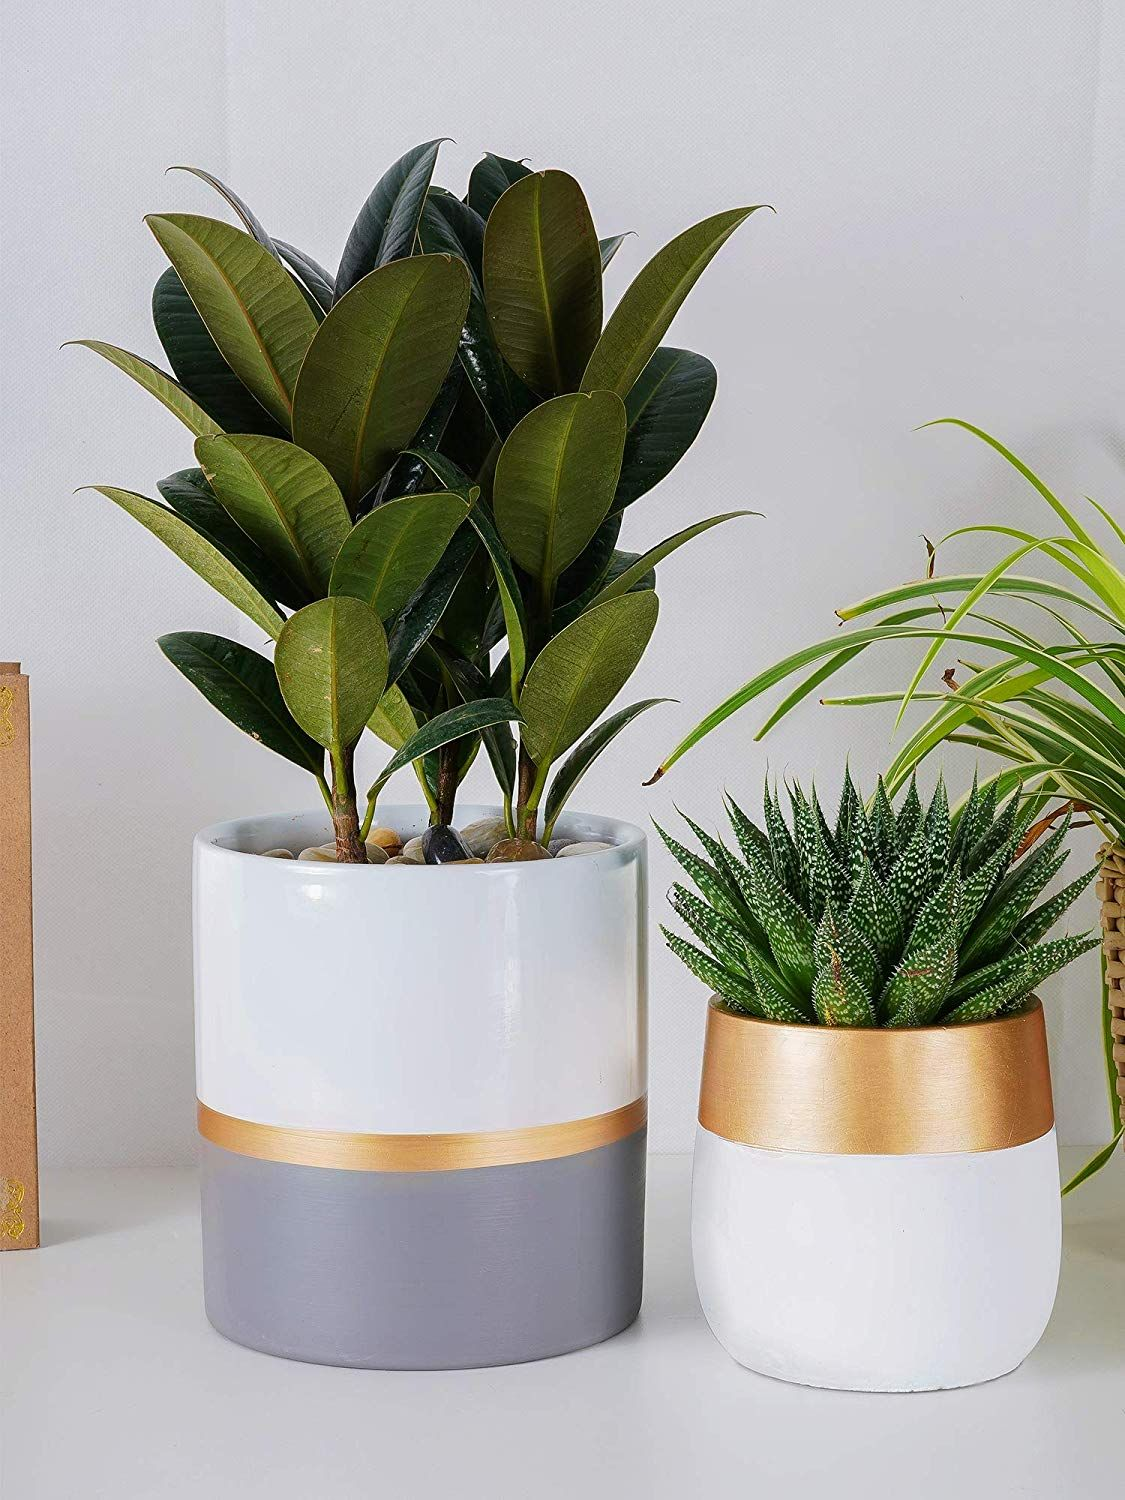 Ceramic Planter Pot For Indoor Plants Ceramic Planter Pots Plants Planter Pots